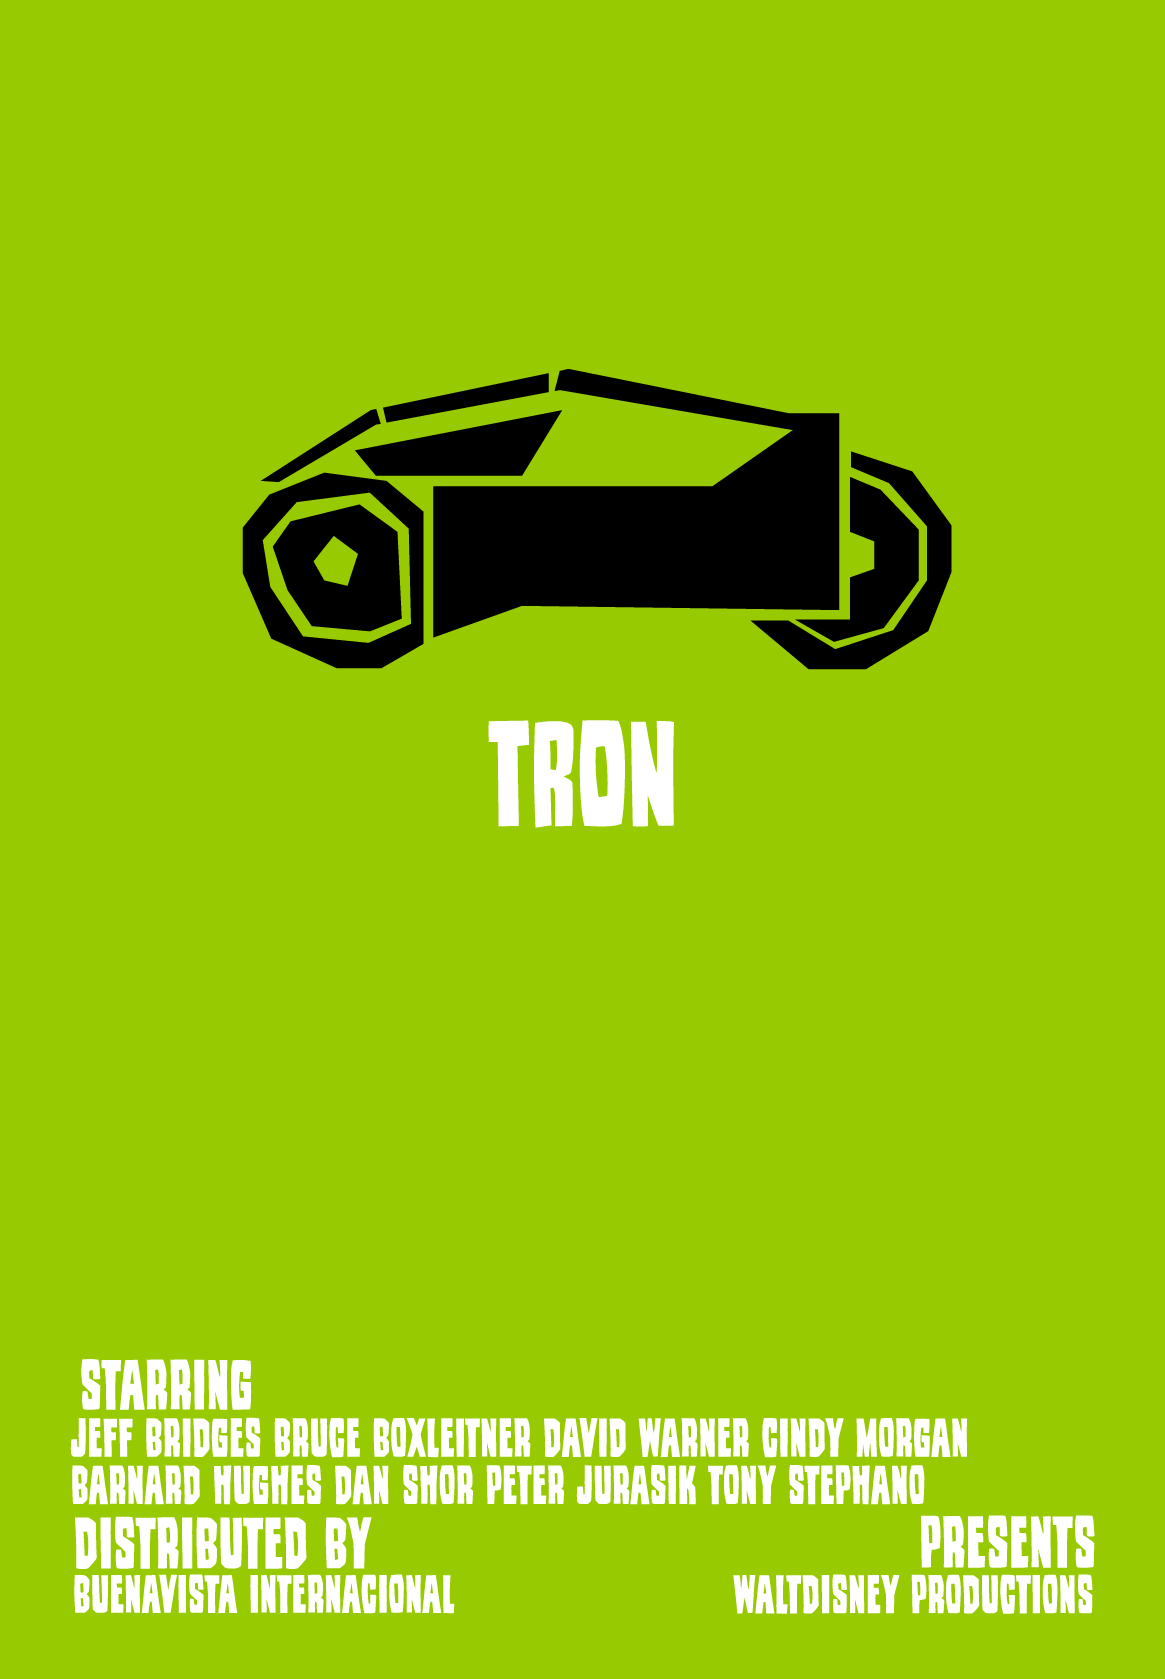 tron_posters_20210002